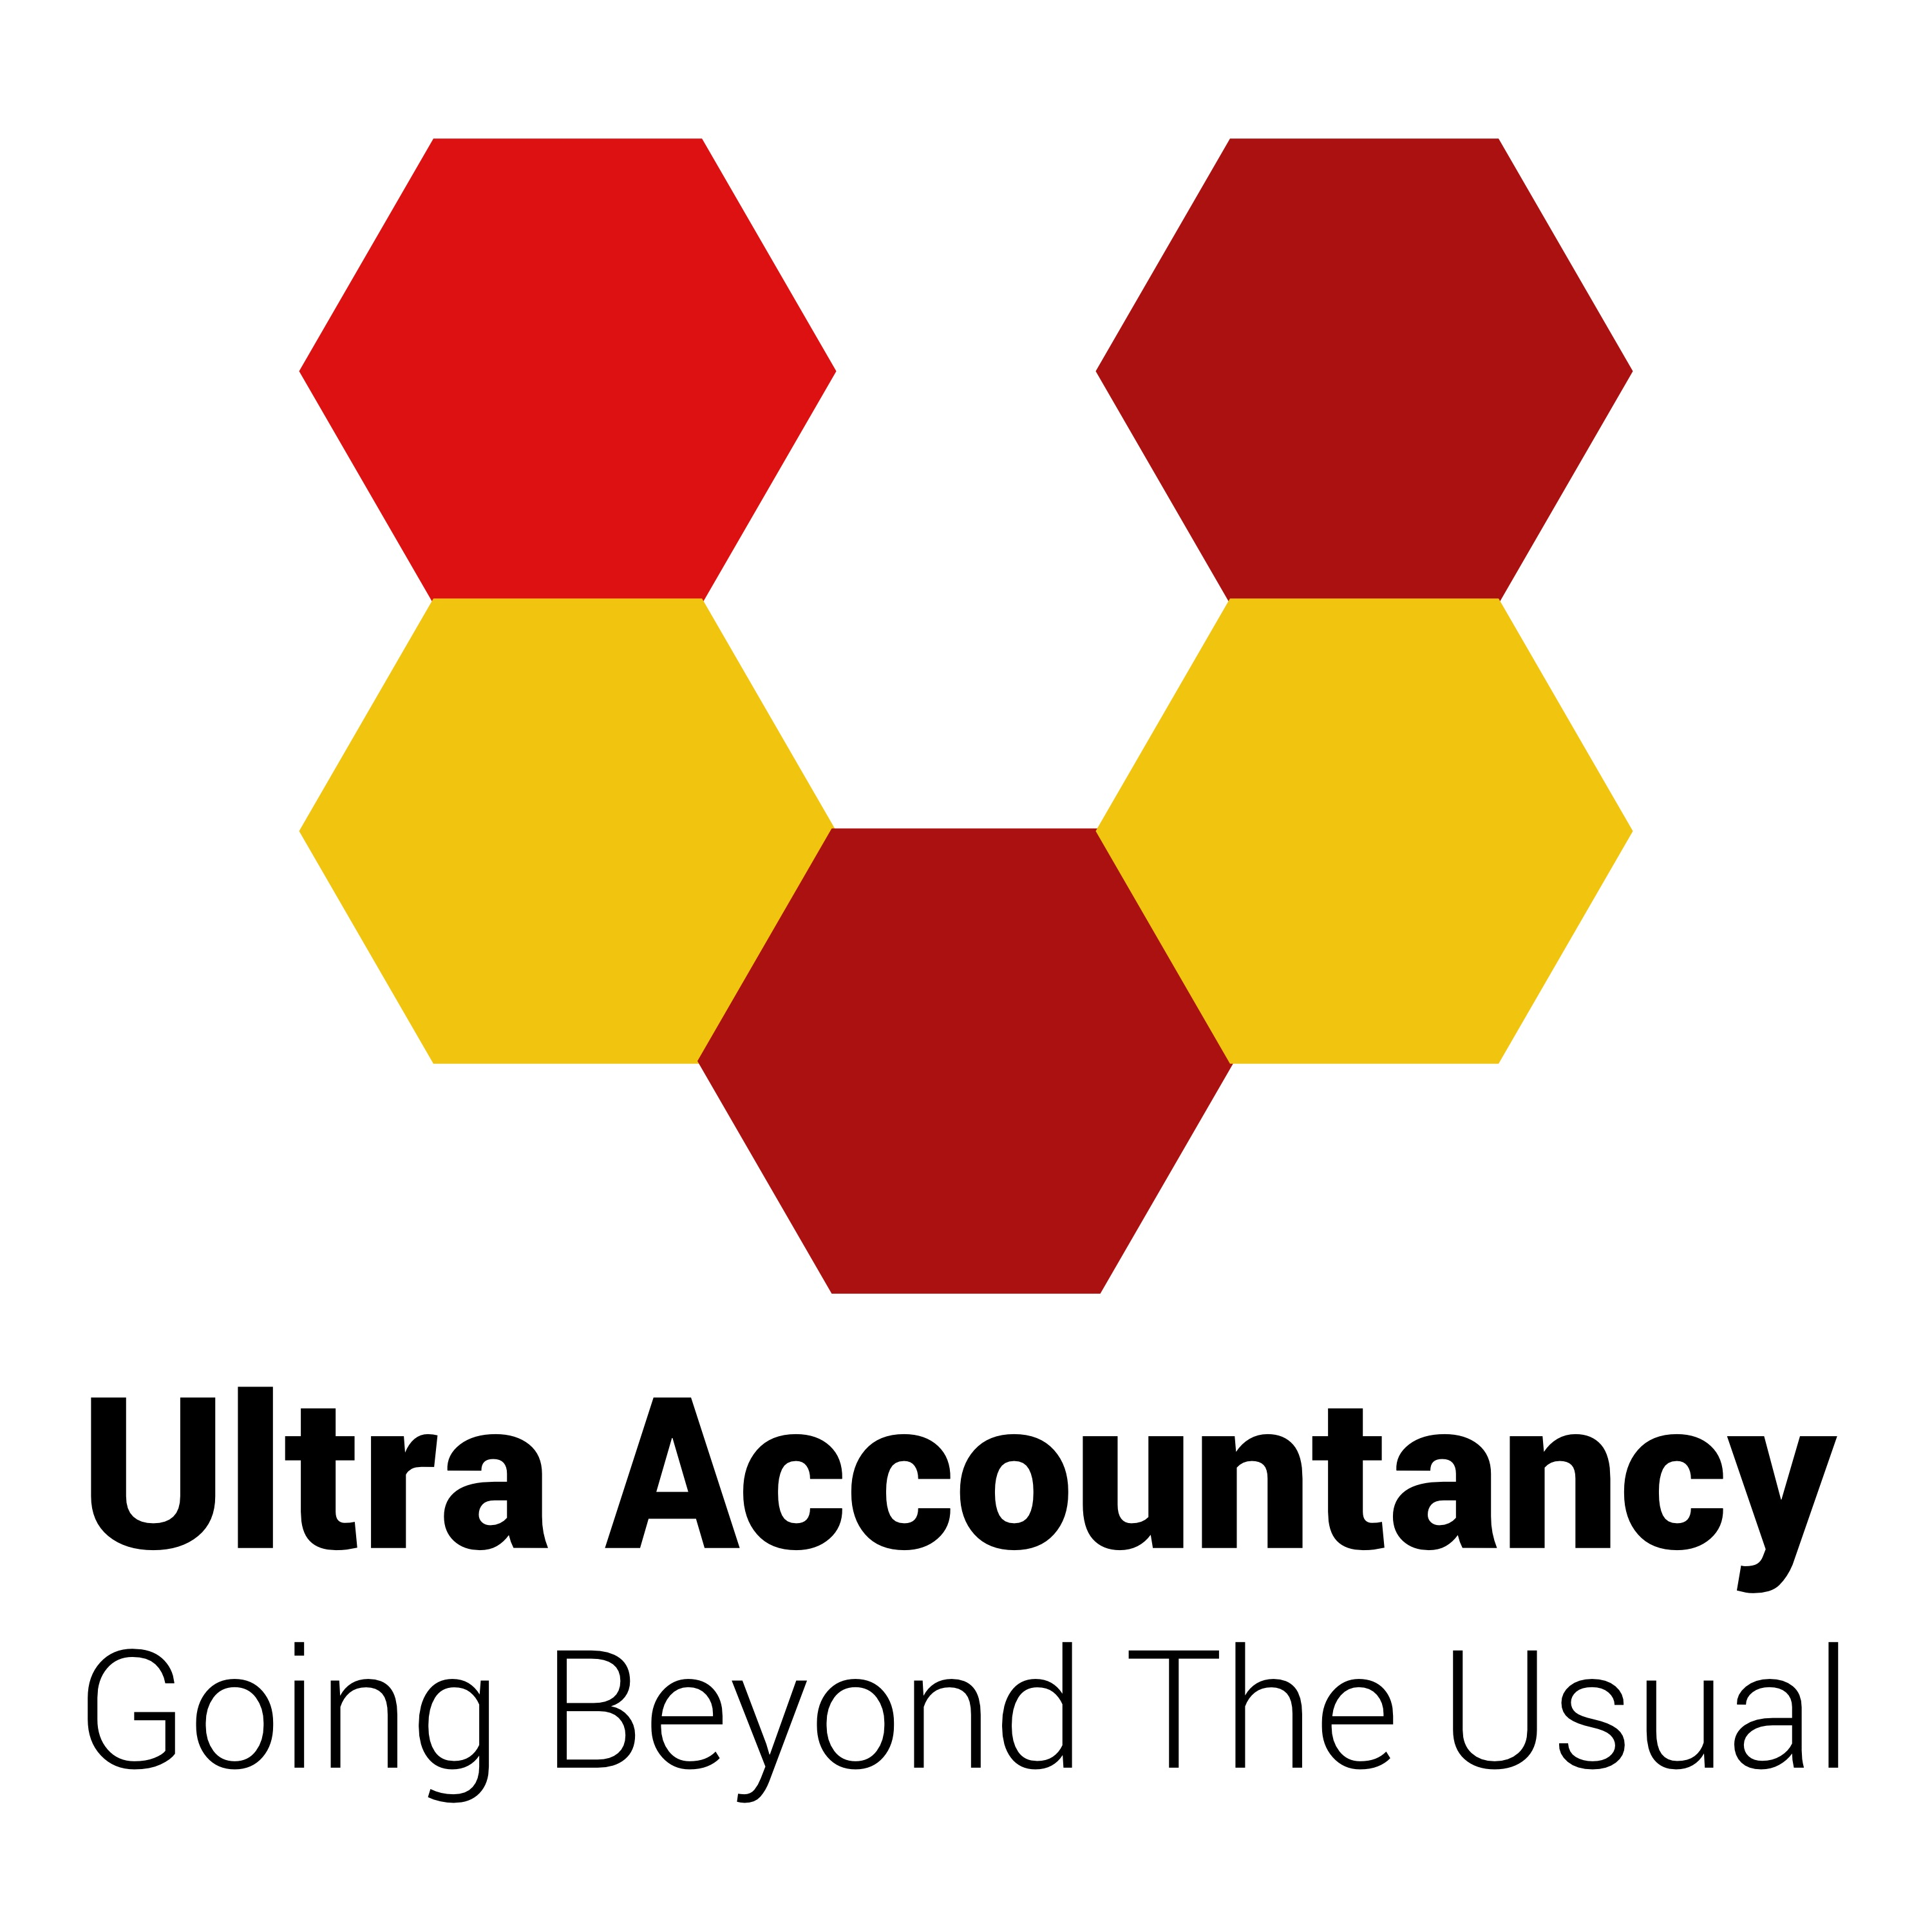 Ultra Accountancy Limited